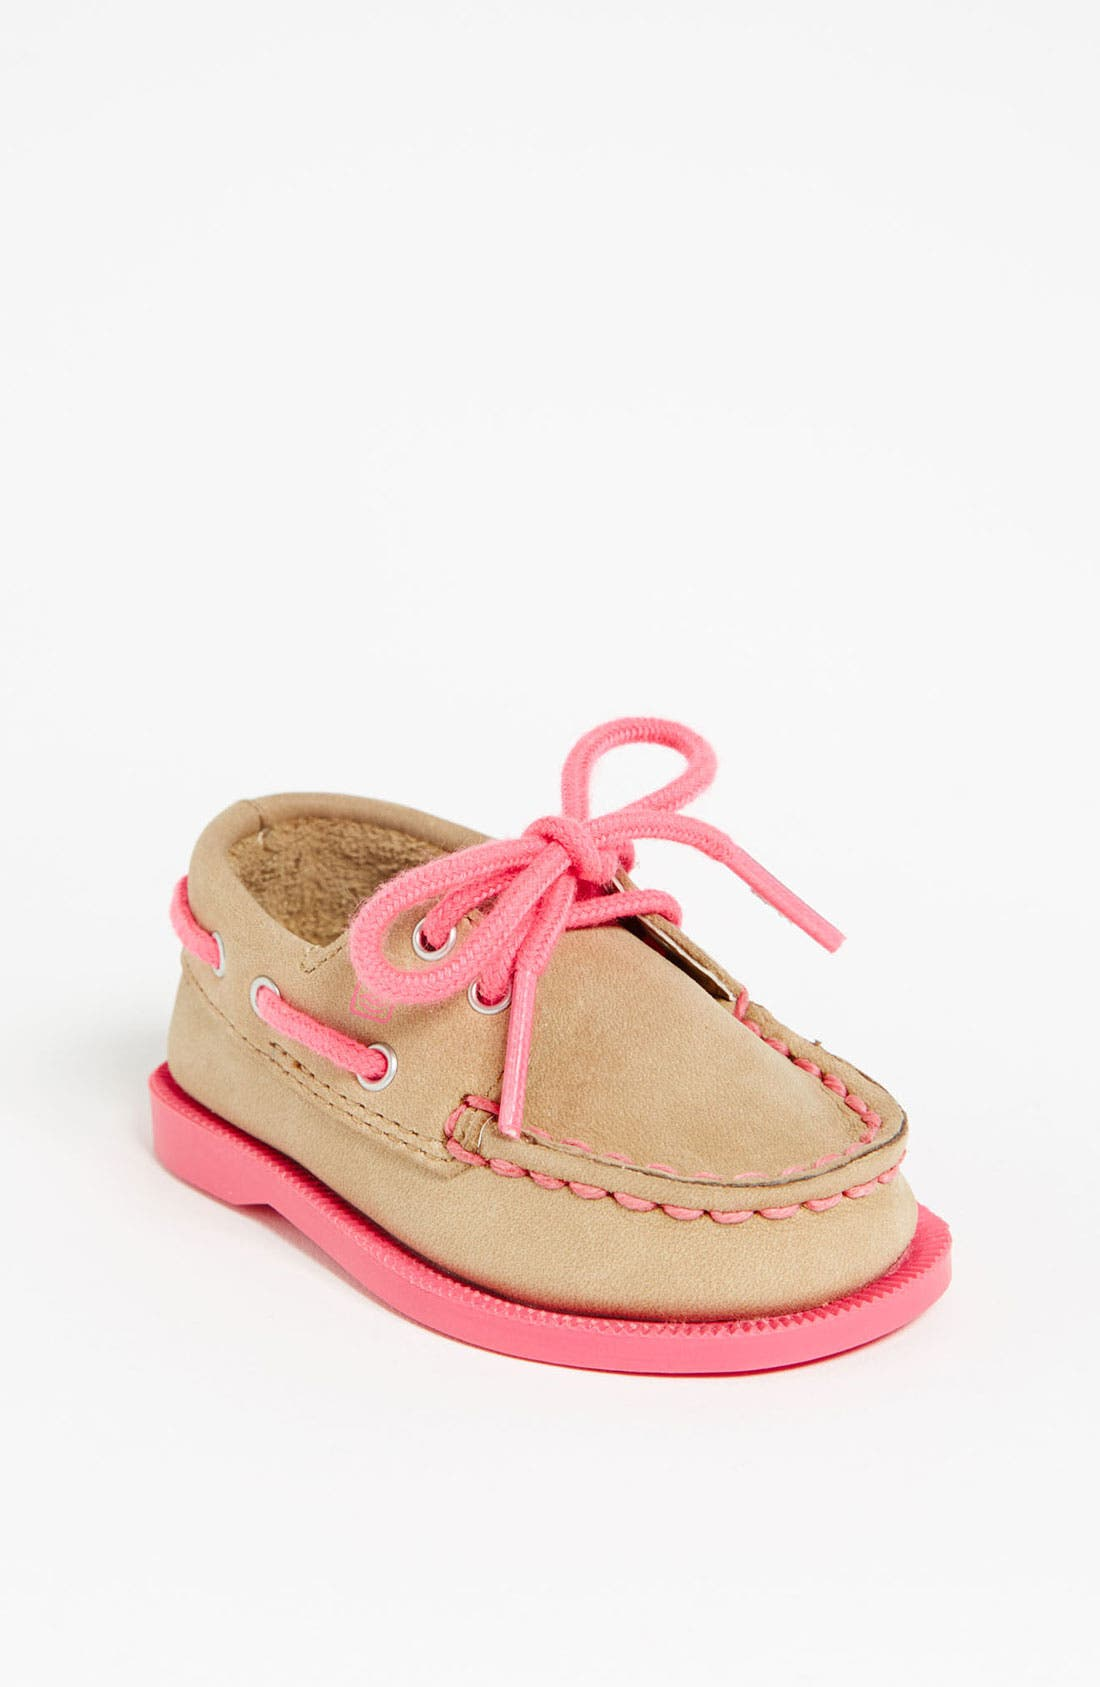 Sperry Top-Sider<sup>®</sup> Kids 'Authentic Original' Crib Shoe,                             Main thumbnail 1, color,